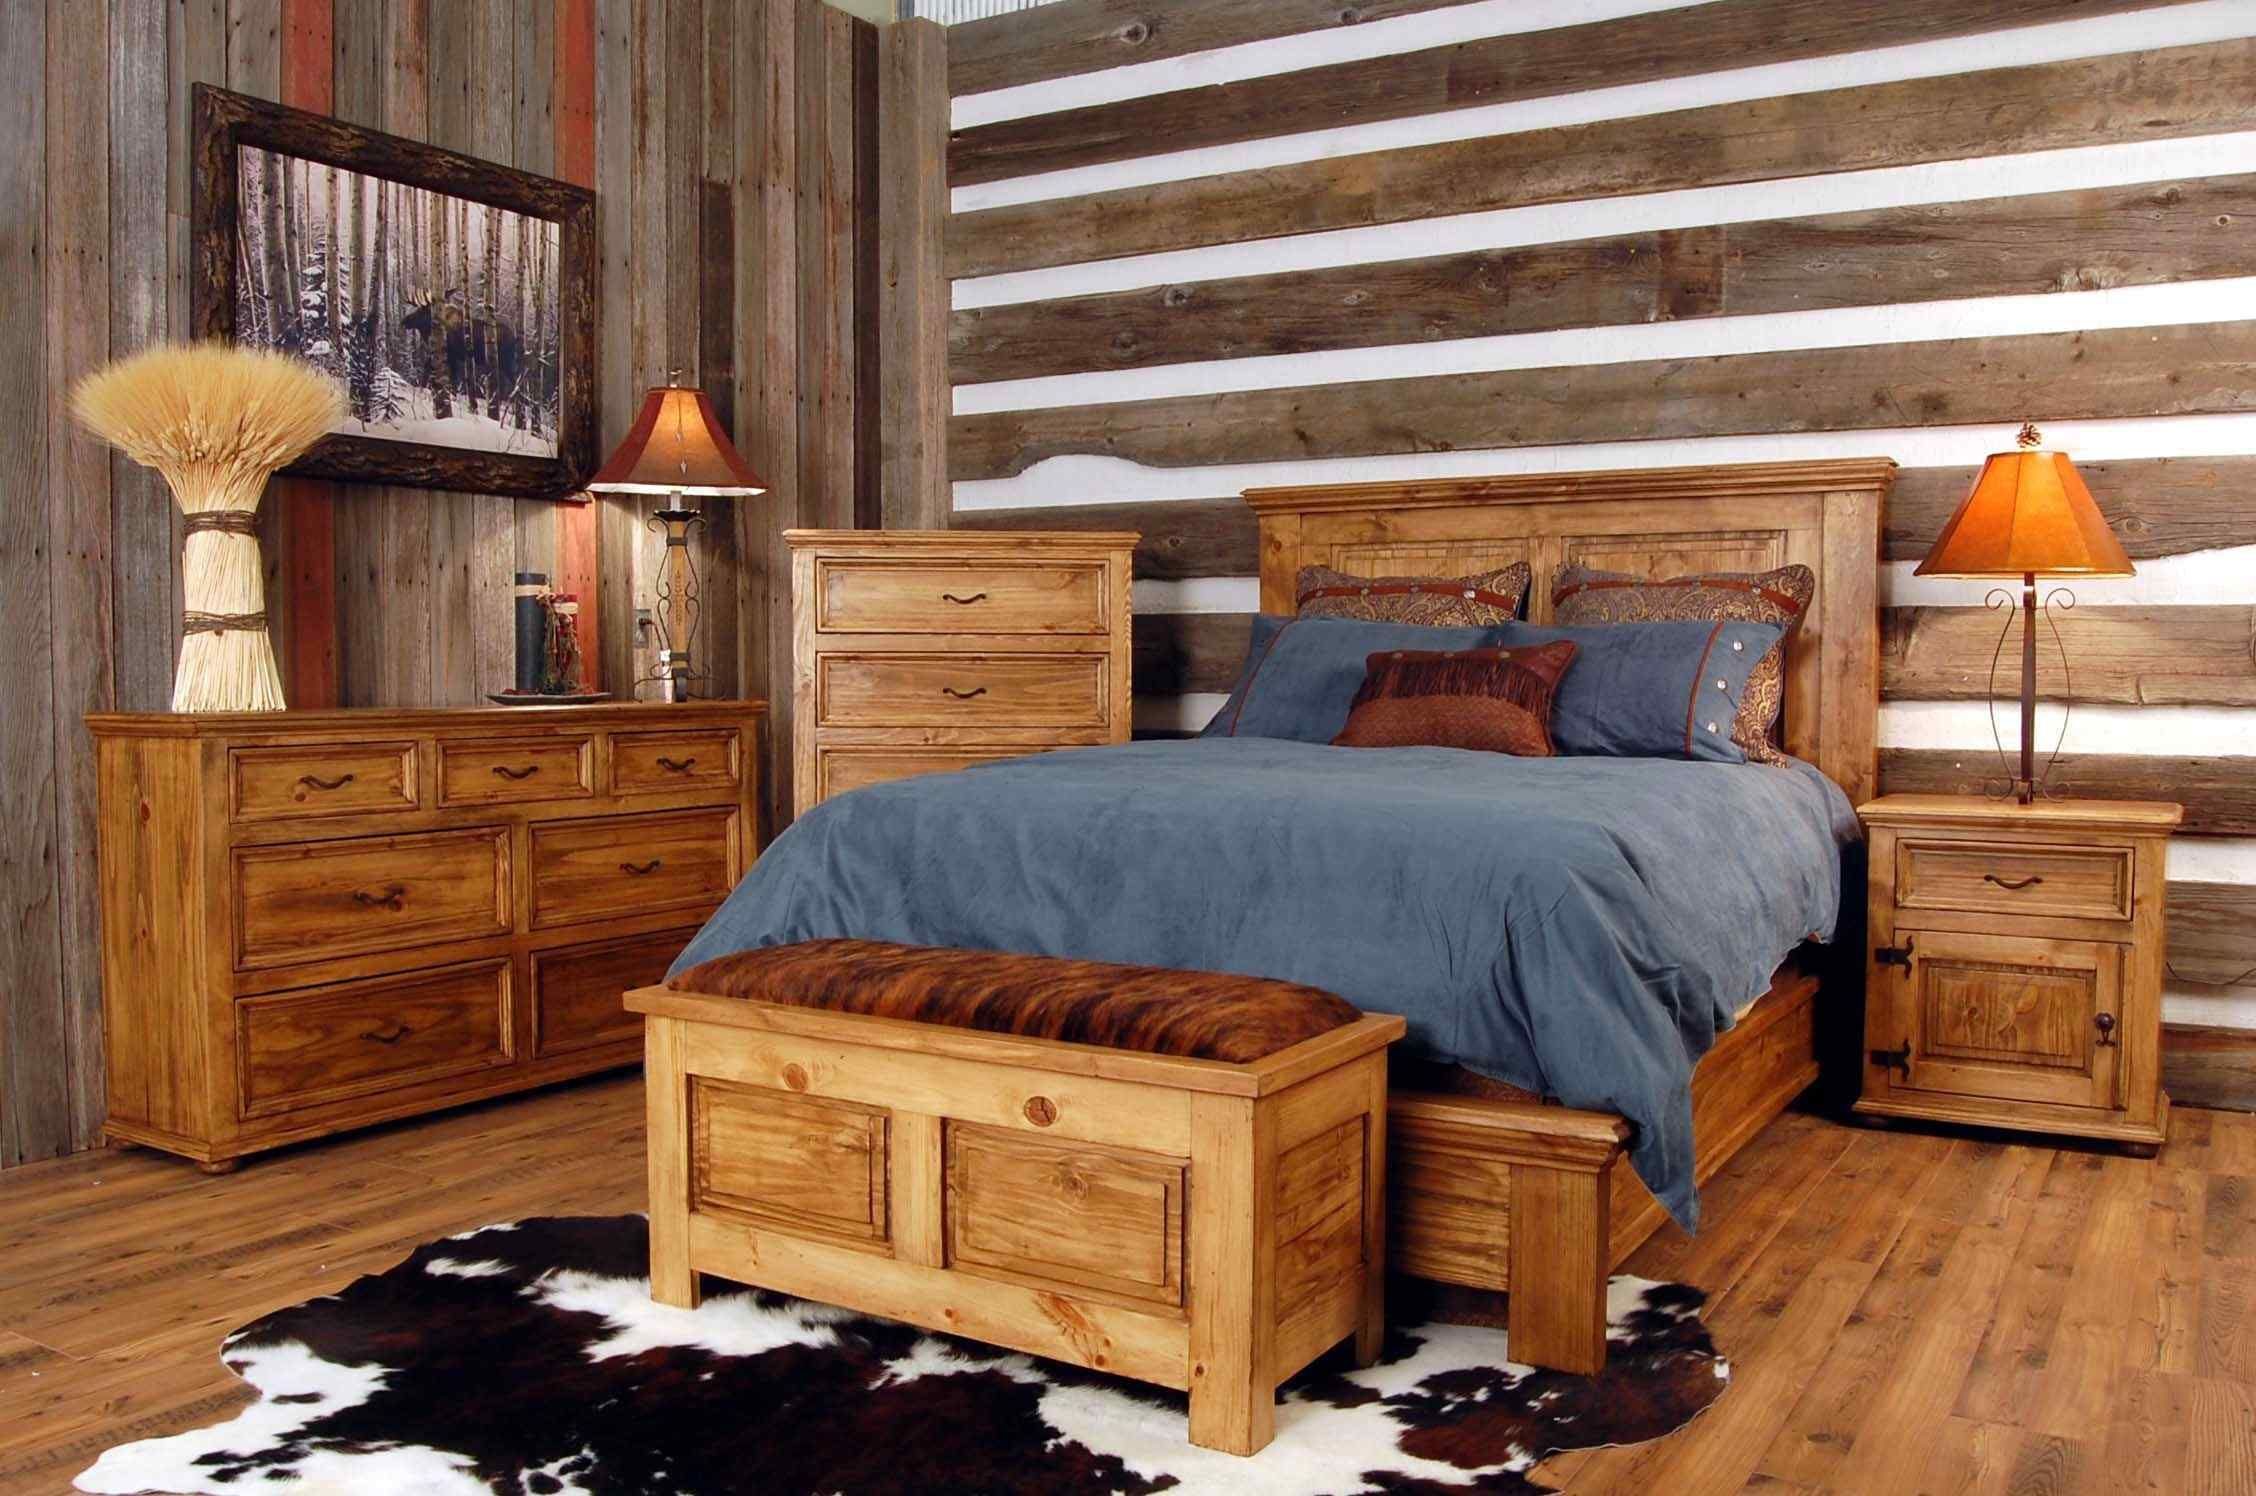 20 ideas elegant rustic farmhouse bedroom master suite